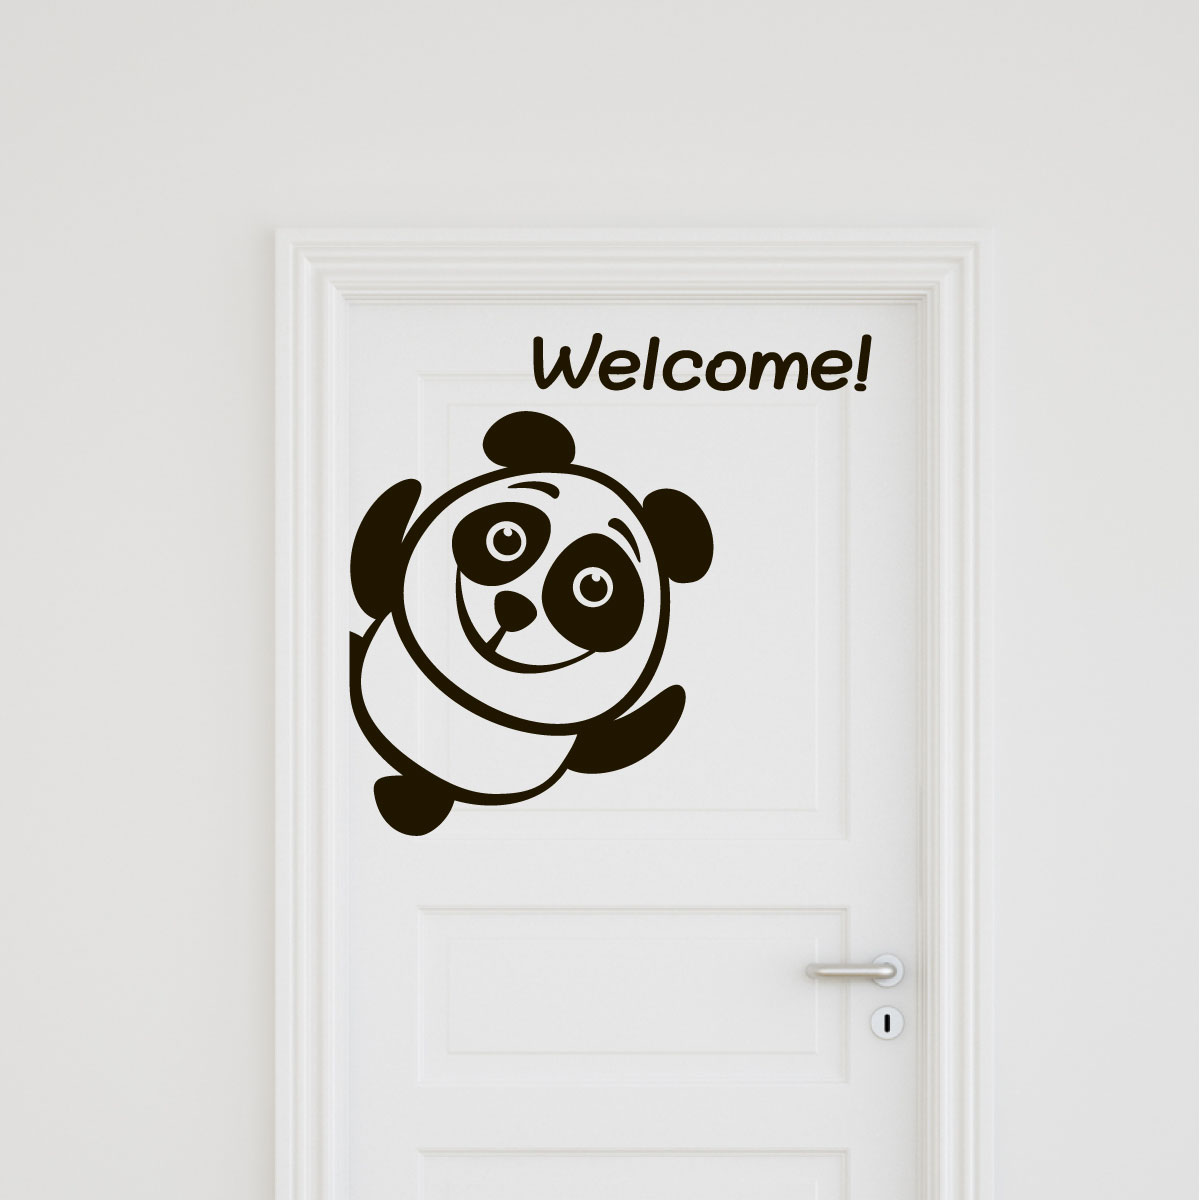 sticker muraux pour portes sticker porte panda bienvenue ambiance. Black Bedroom Furniture Sets. Home Design Ideas